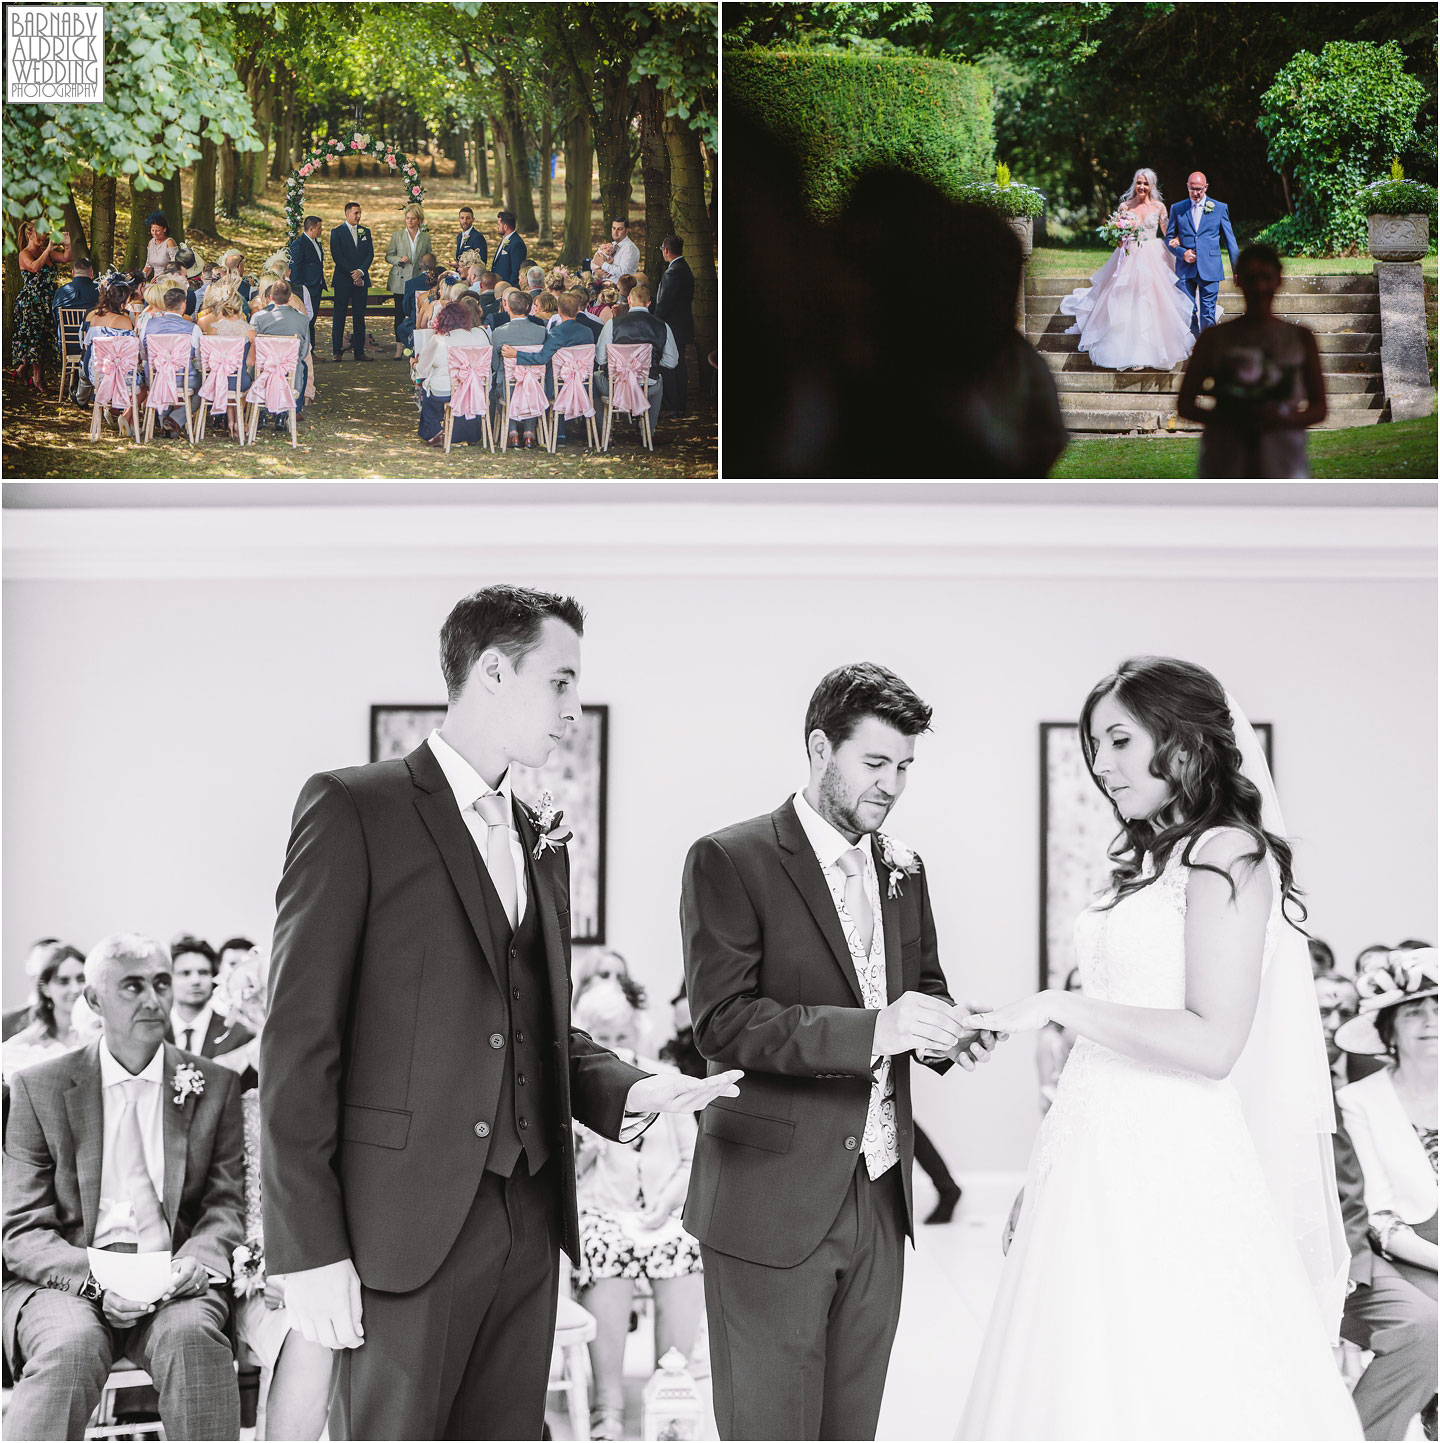 Outdoor Sapphire service at Saltmarshe Hall near Goole in East Yorkshire, Wedding photography at Saltmarshe Hall, East Yorkshire Wedding Photographer,